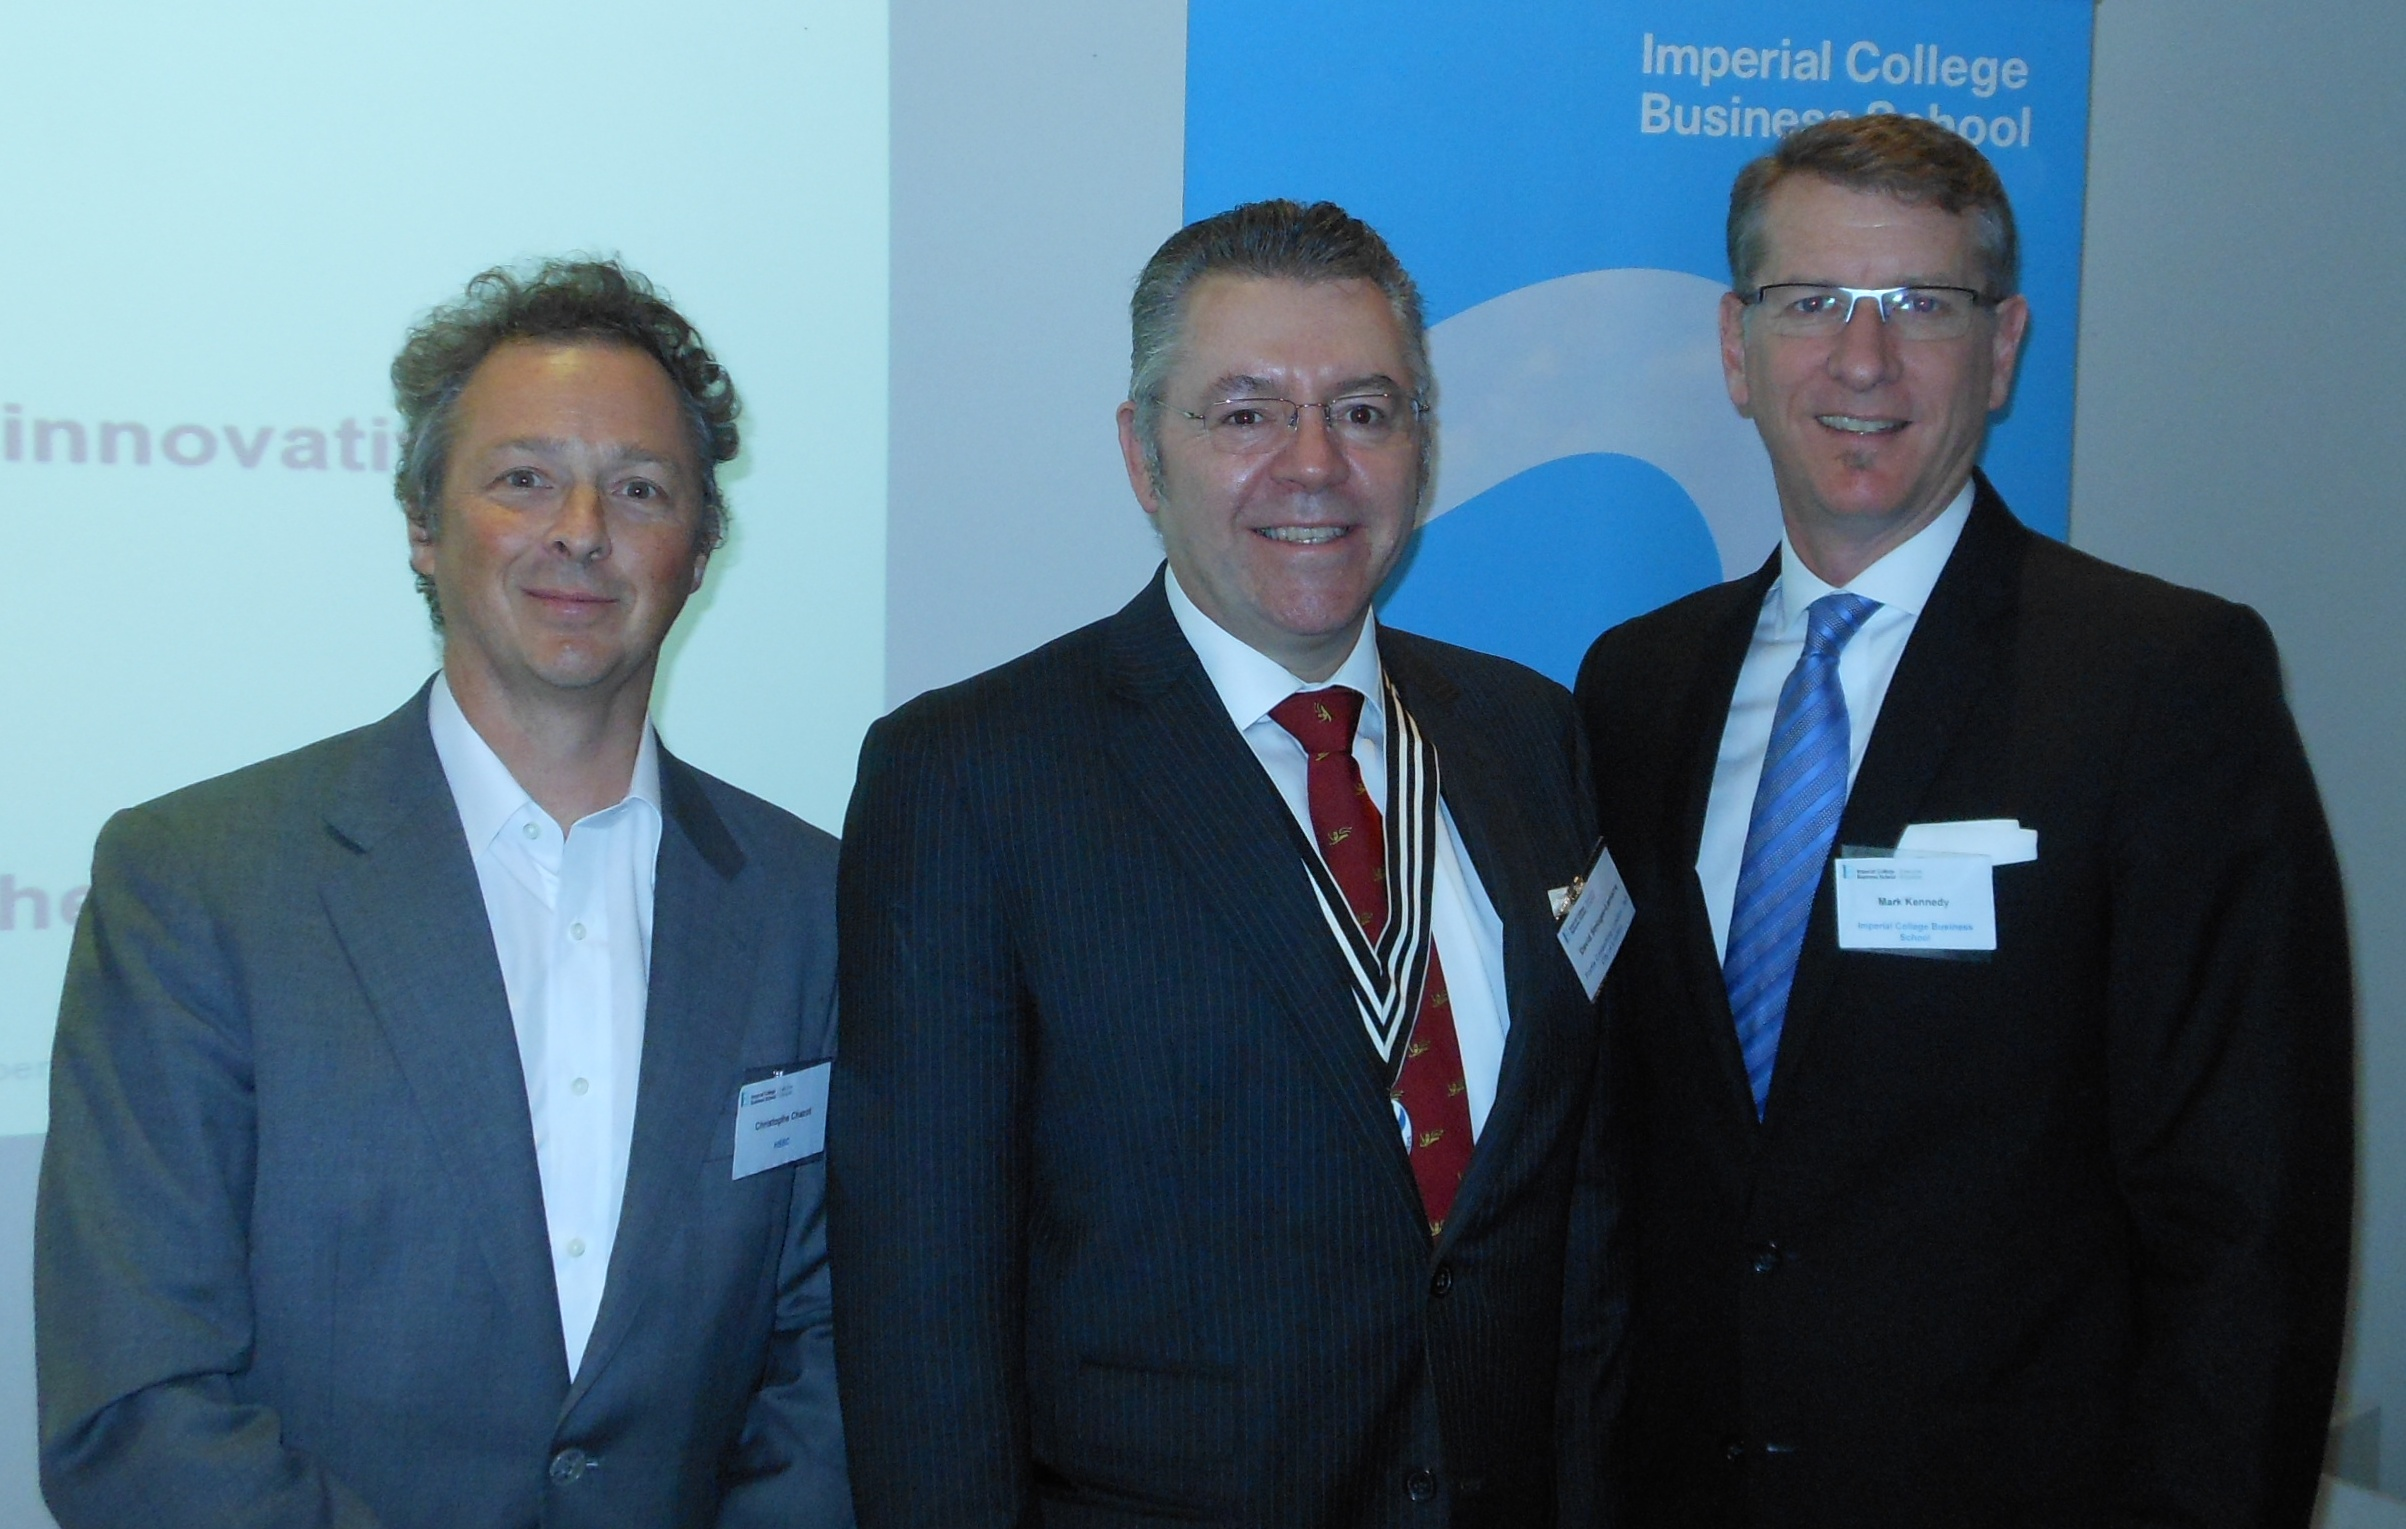 Right to left: Professor Kennedy, David Stringer-Lamarre and Christophe Chazot.